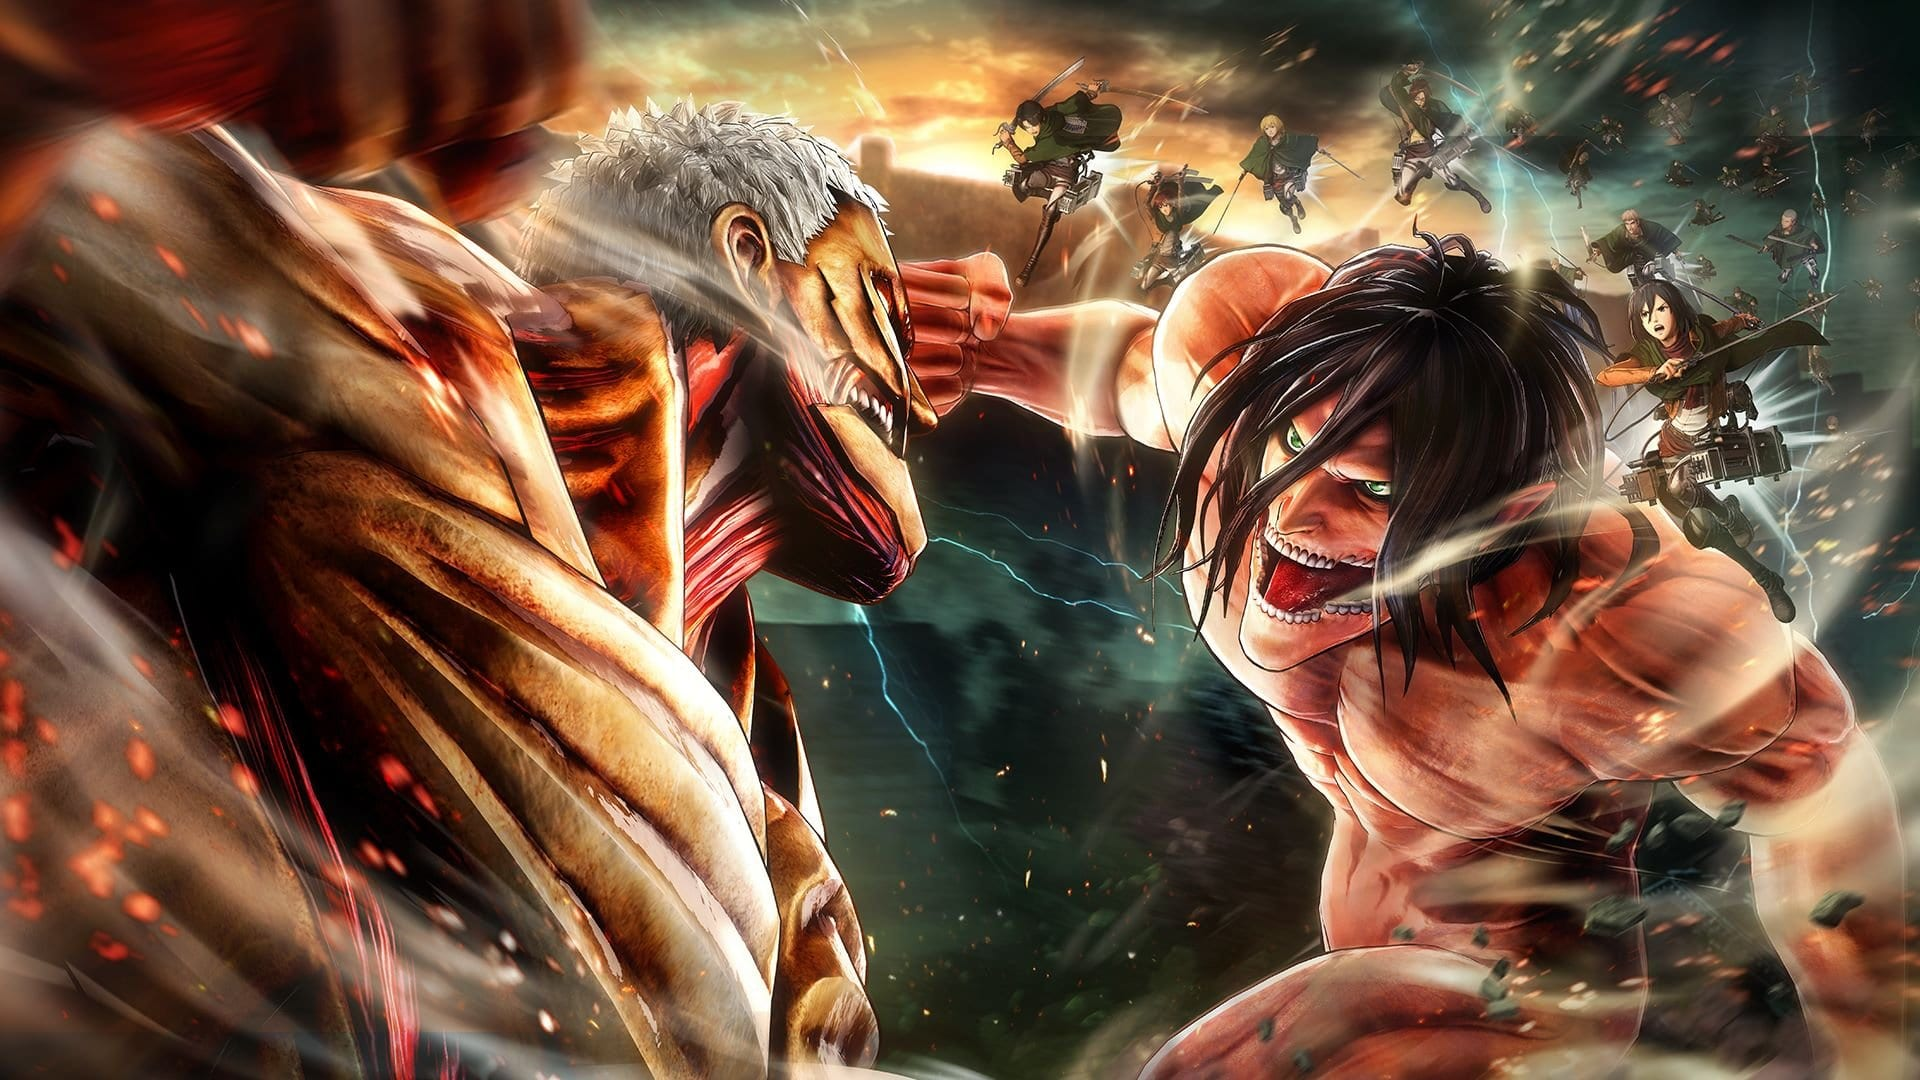 Attack on Titan Season 4 Episode 2 Release Date, Online Stream